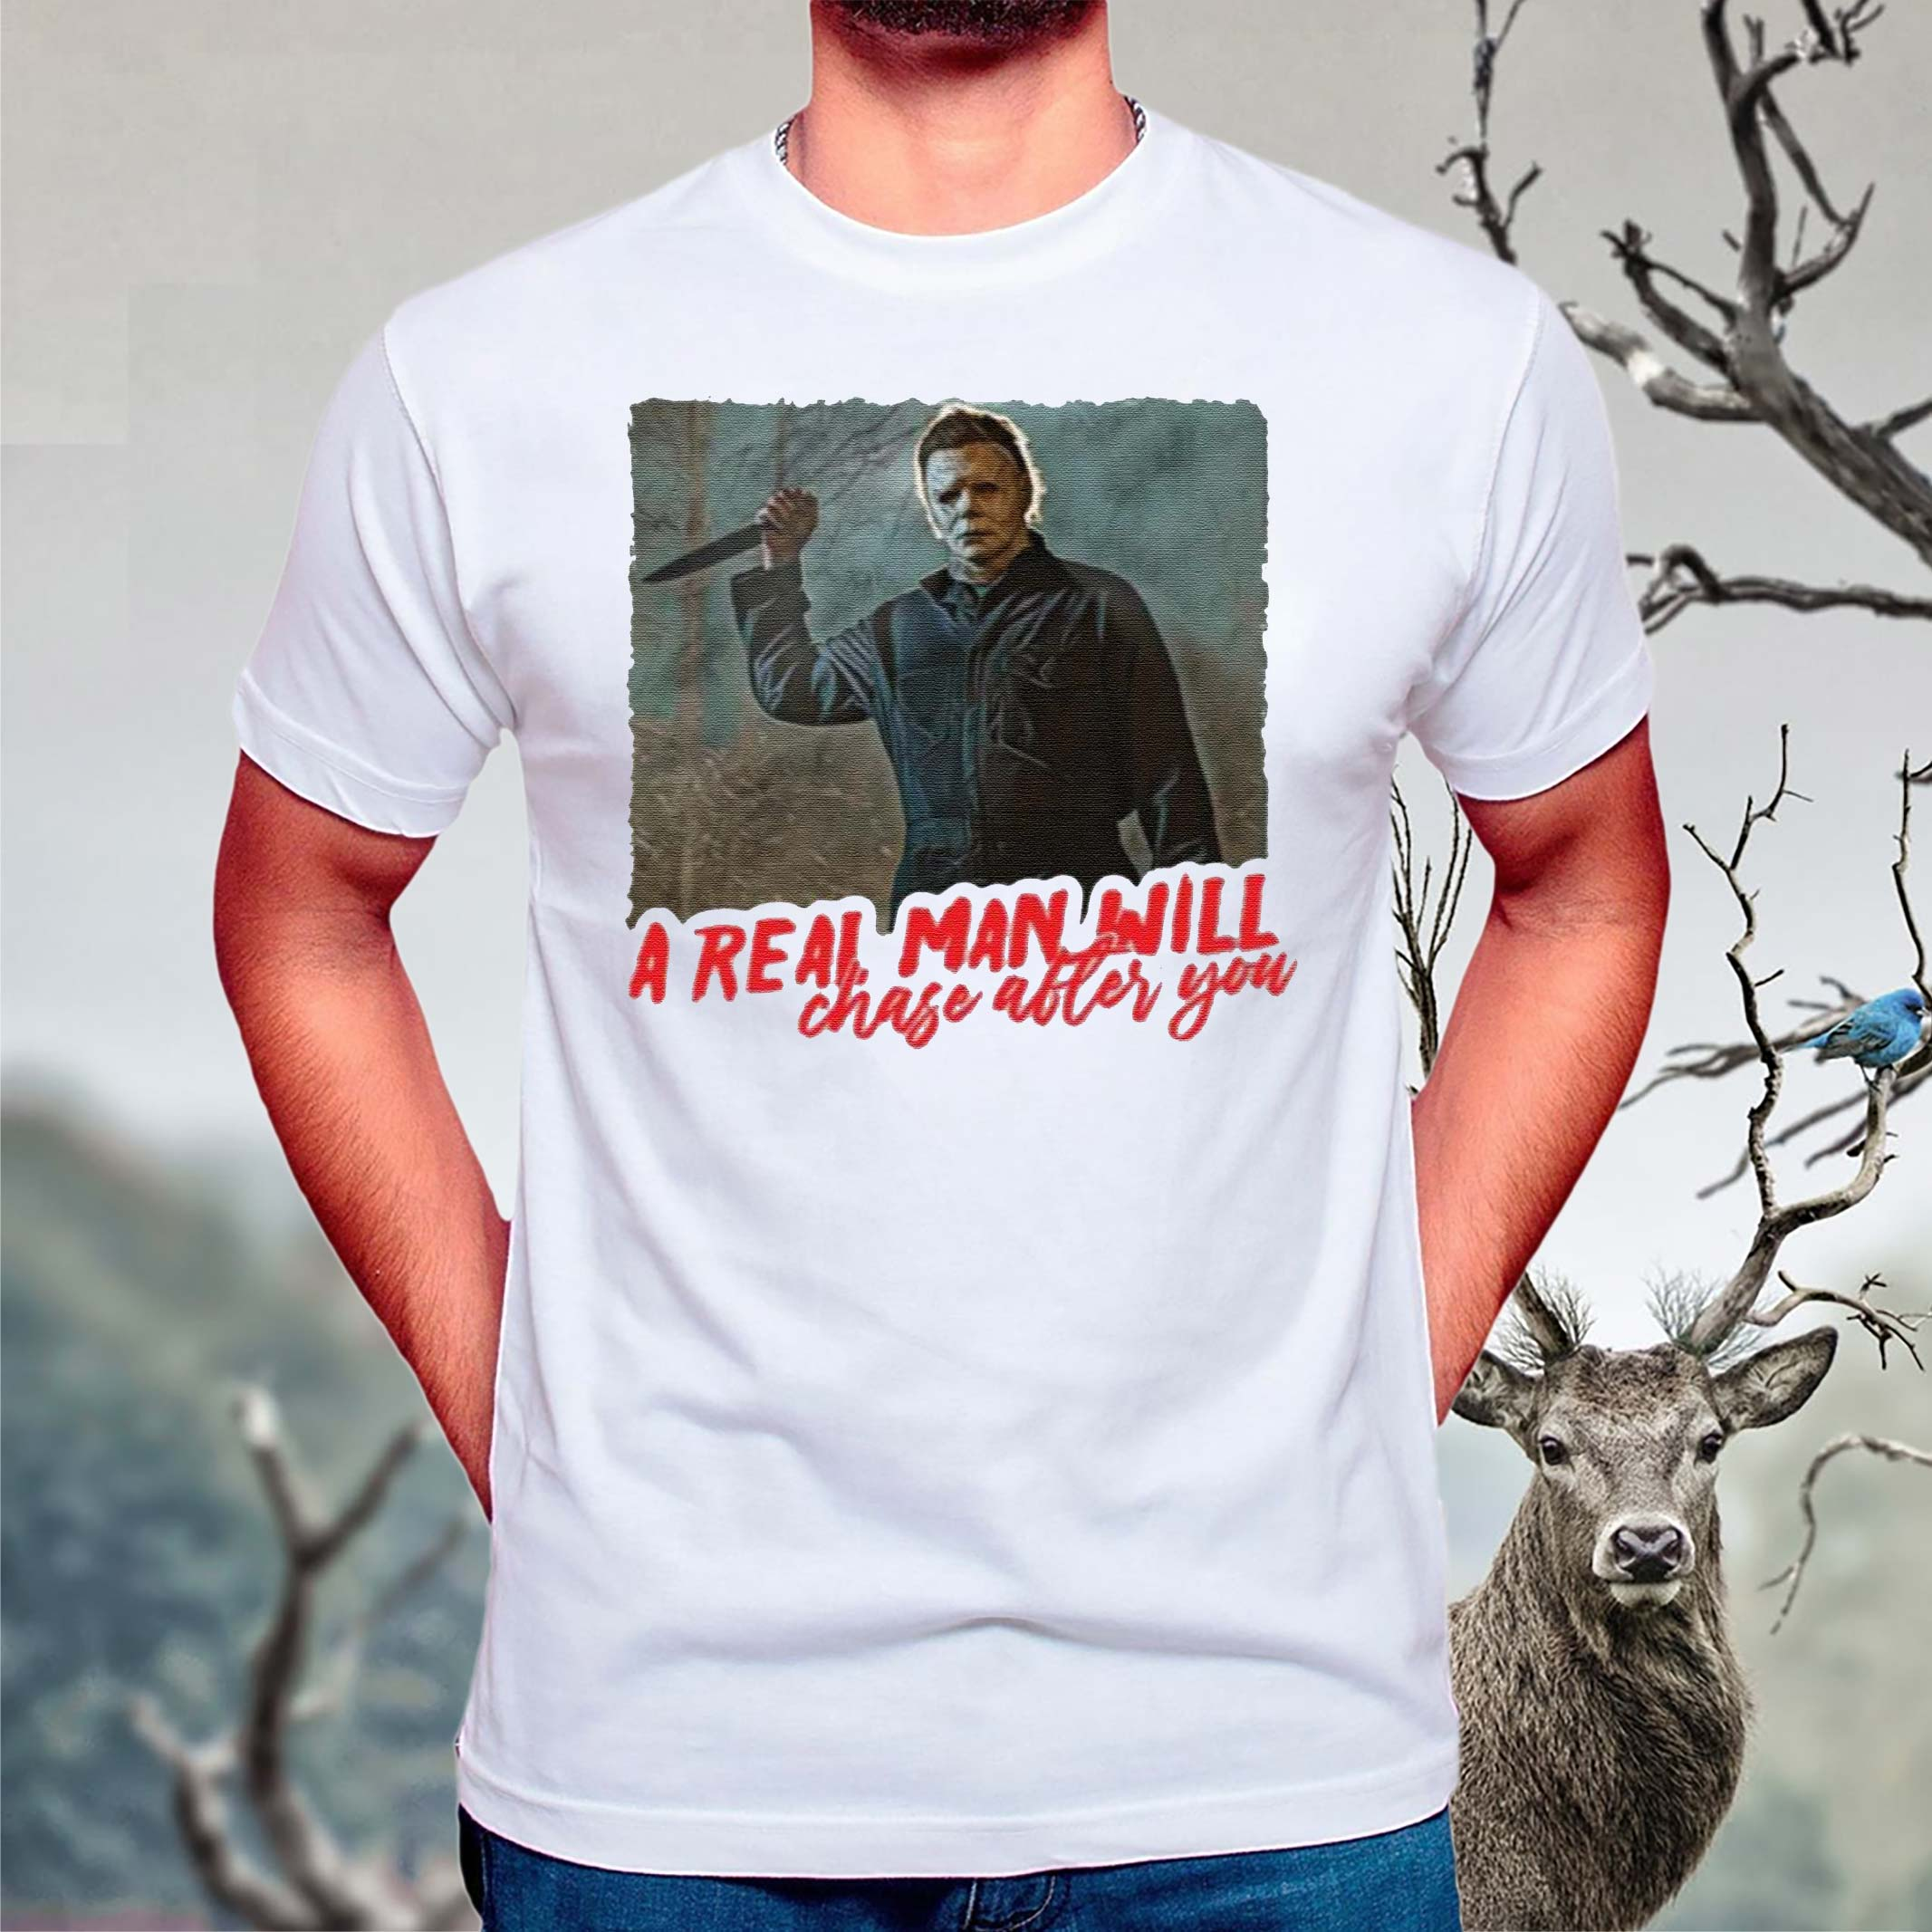 Michael-Myers-A-Real-Man-Will-Chase-After-You-shirt